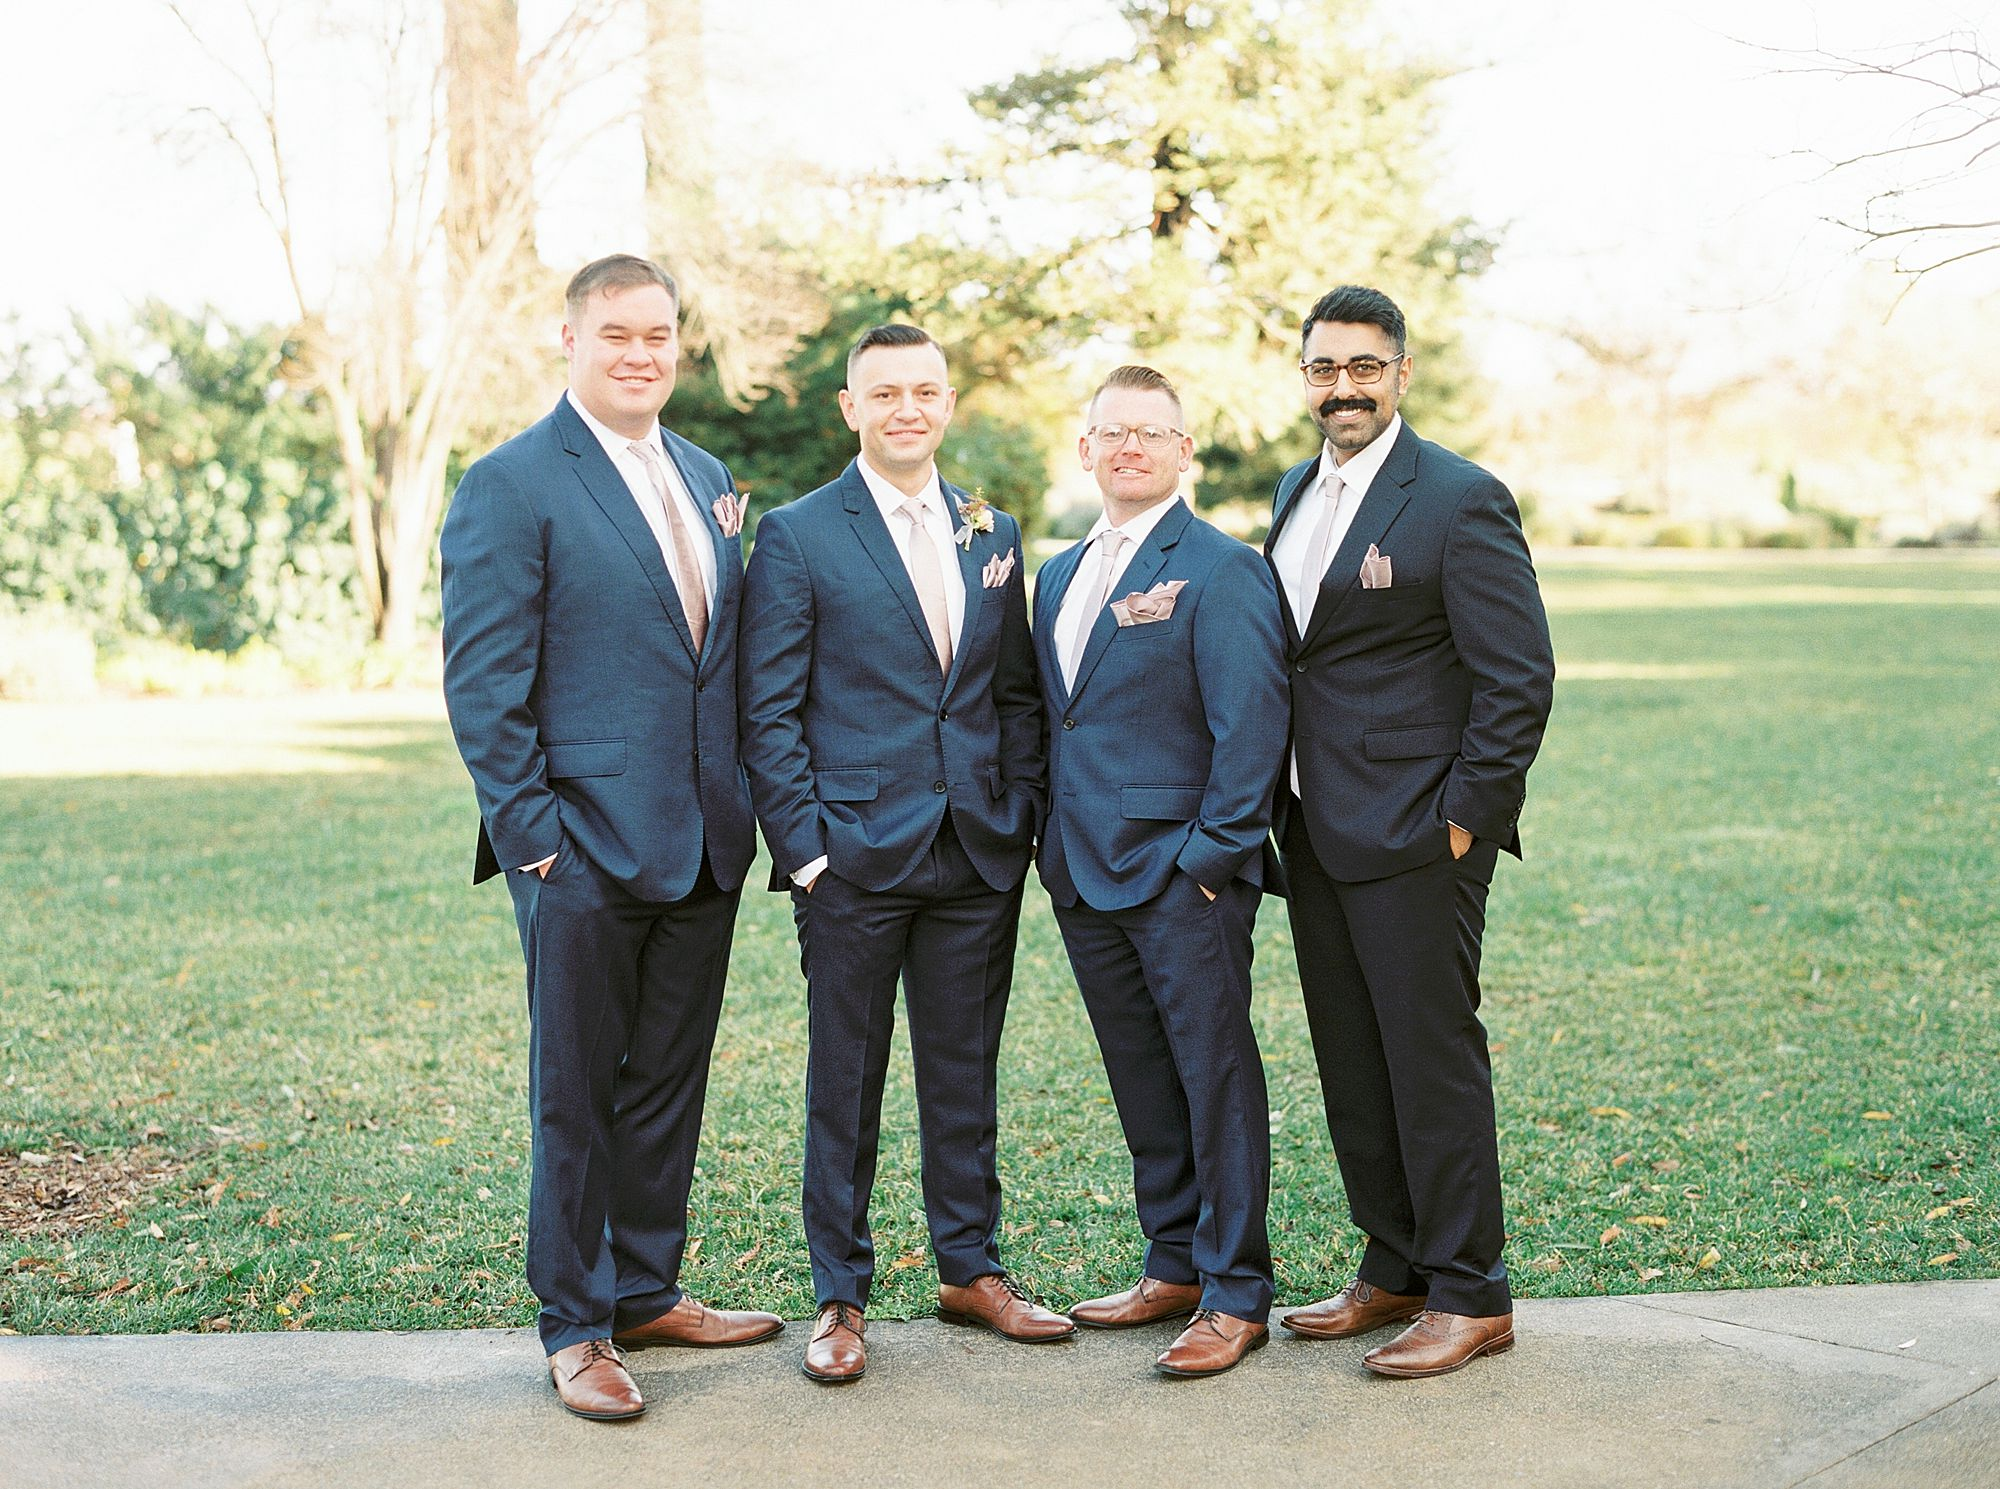 Inn at Park Winters Wedding - Lindsay and Shane - Ashley Baumgartner - Park Winters Wedding Photographer - Sacramento Wedding Photographer_0042.jpg